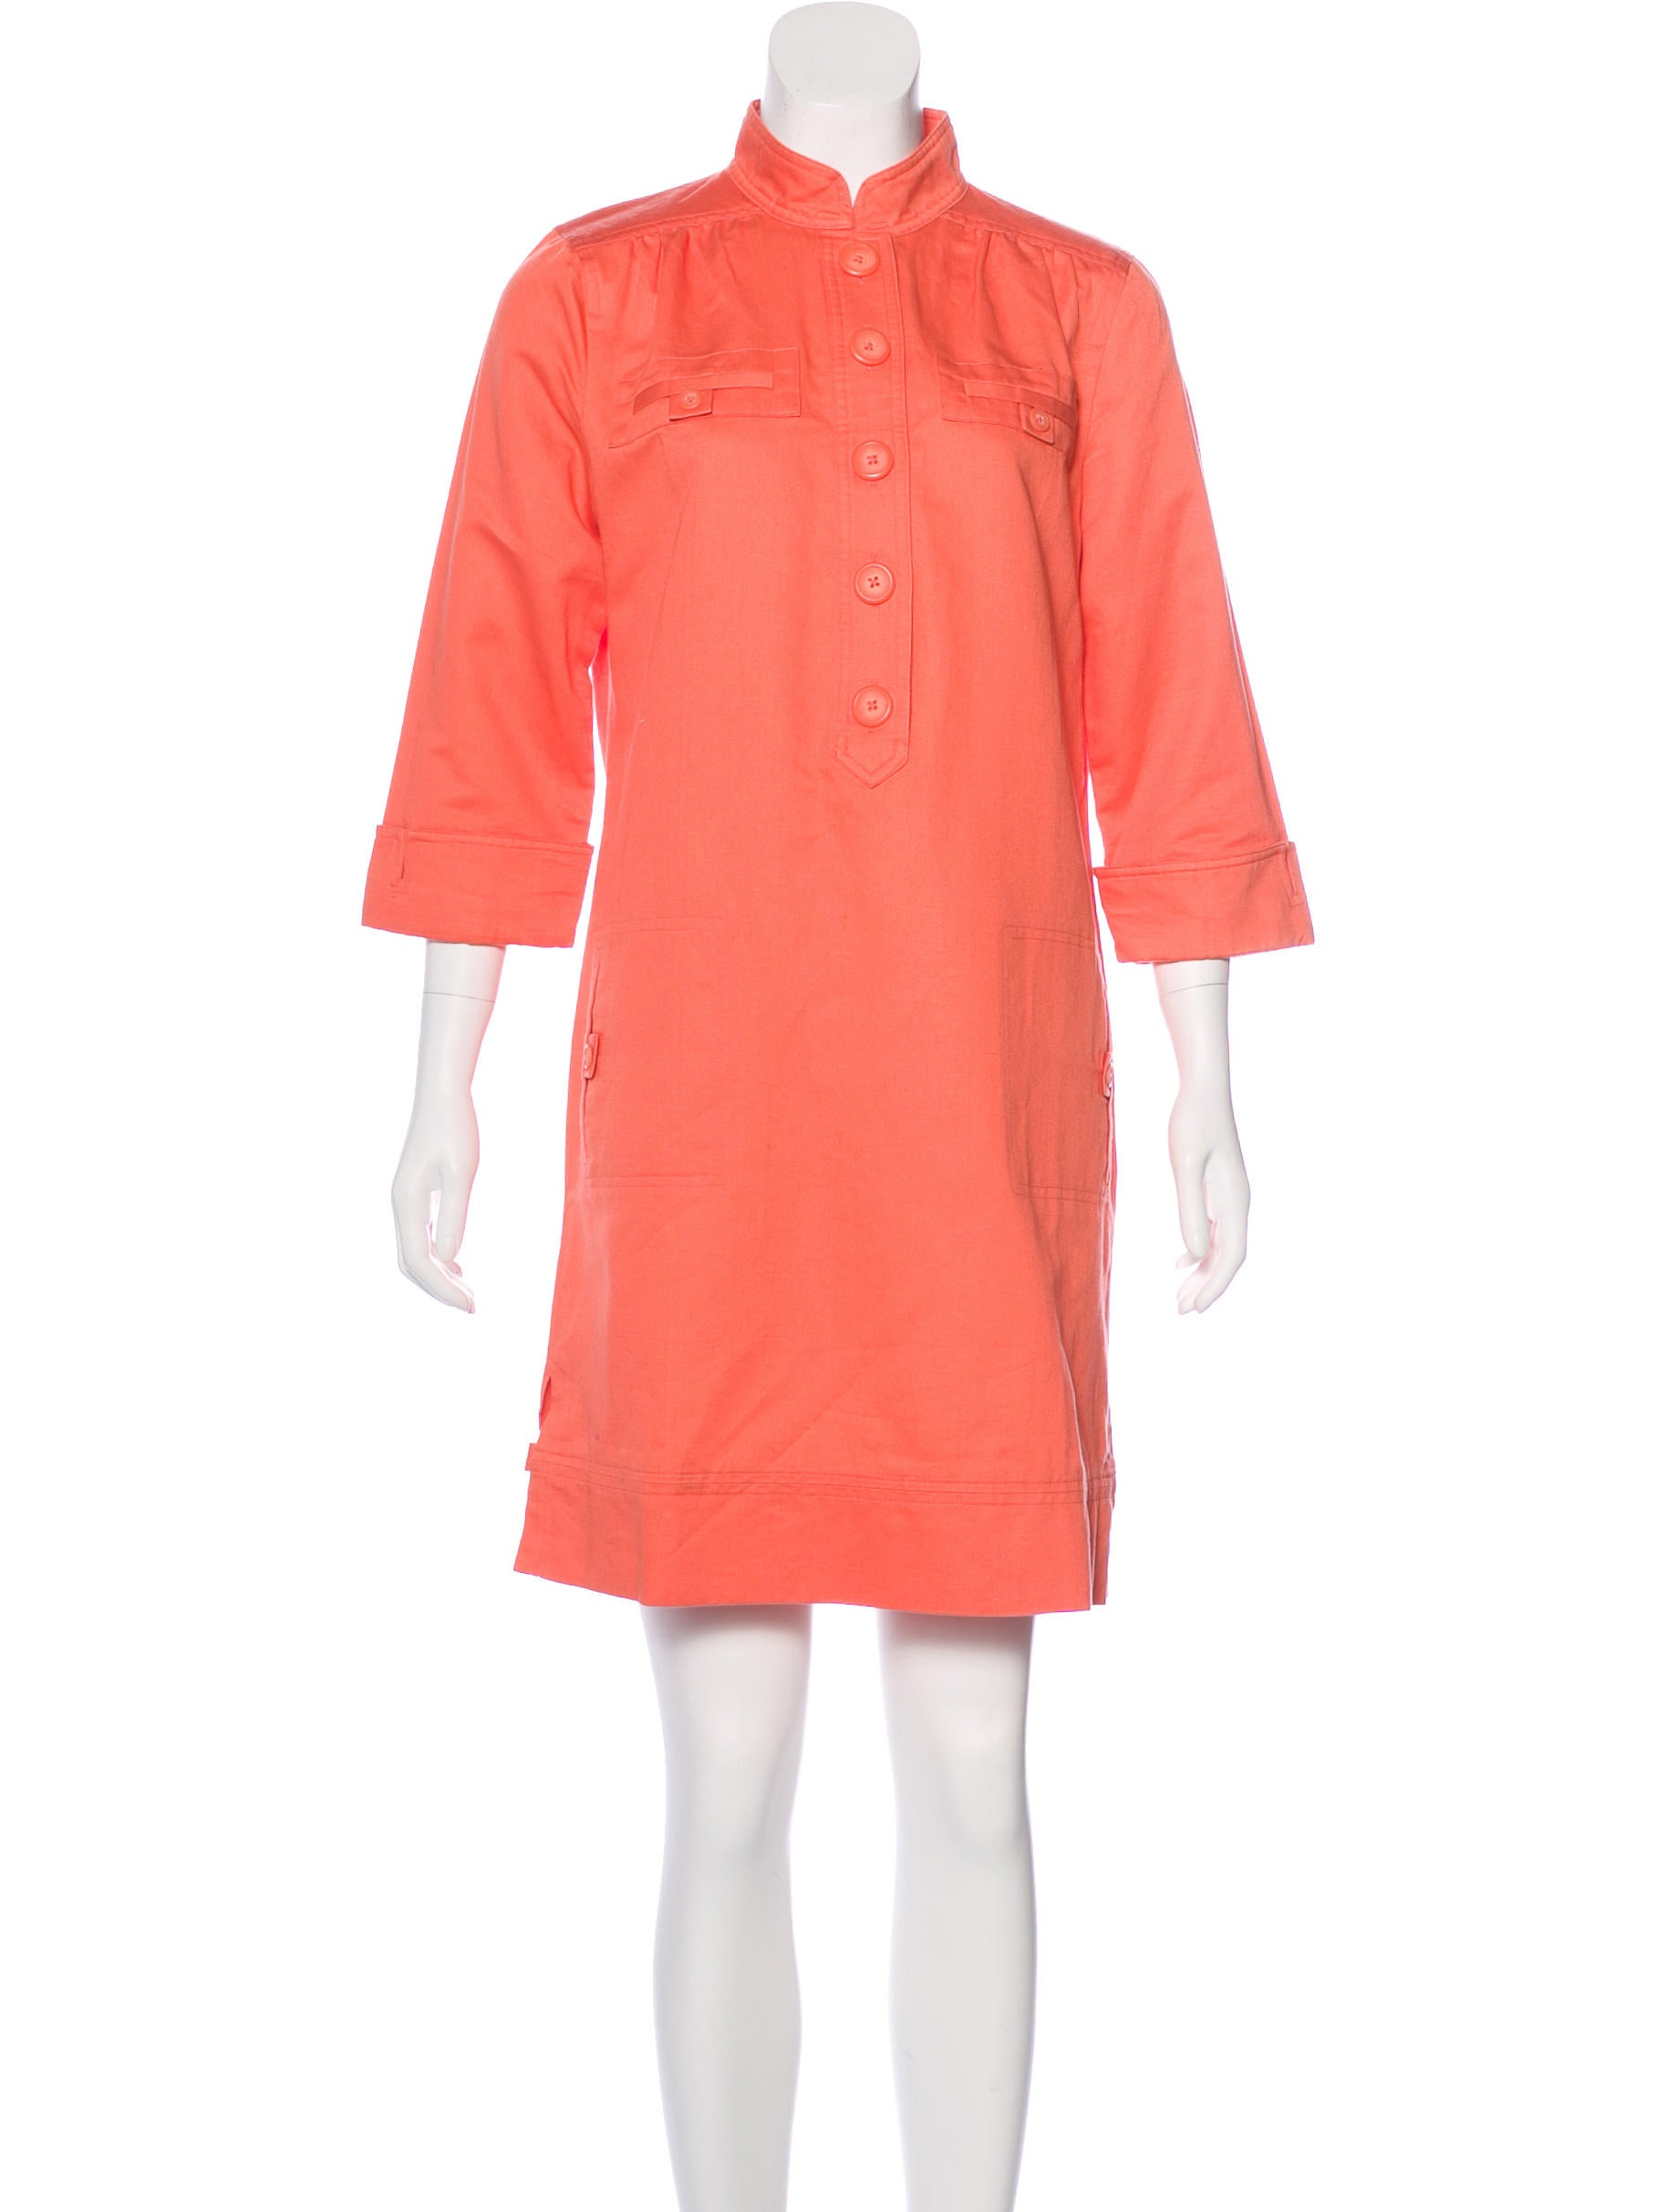 Stand Collar Dress Designs : Magaschoni stand collar mini dress clothing wn